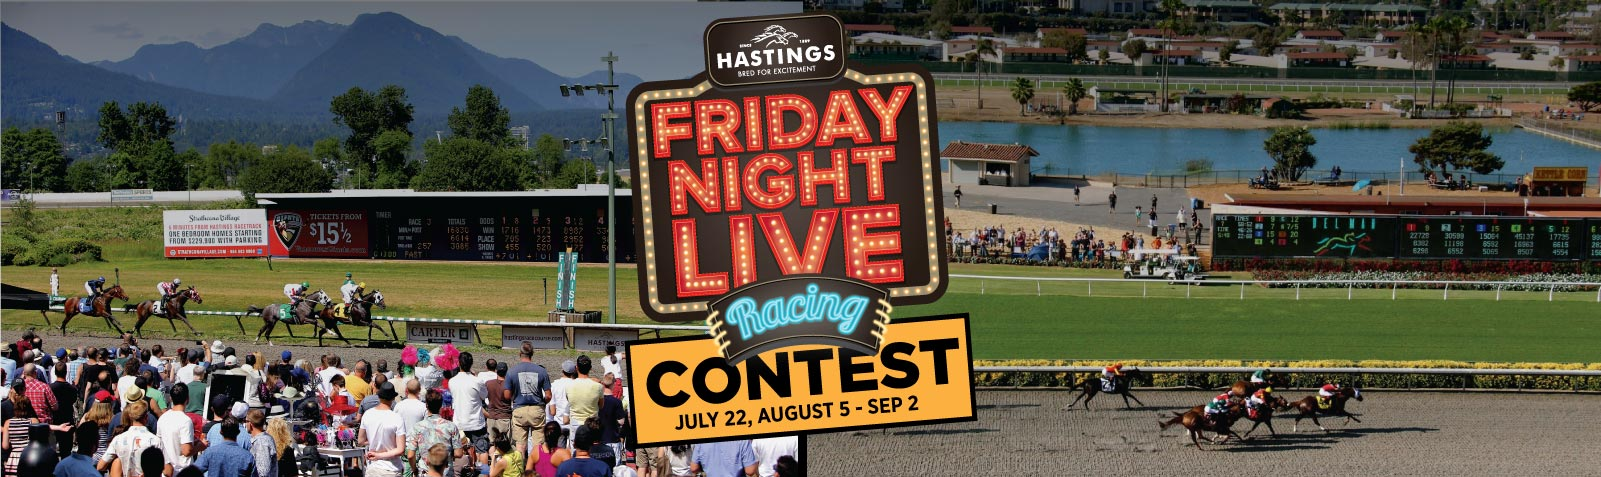 HPI16-211-Friday-Night-Live-Contest-Rev-Slider